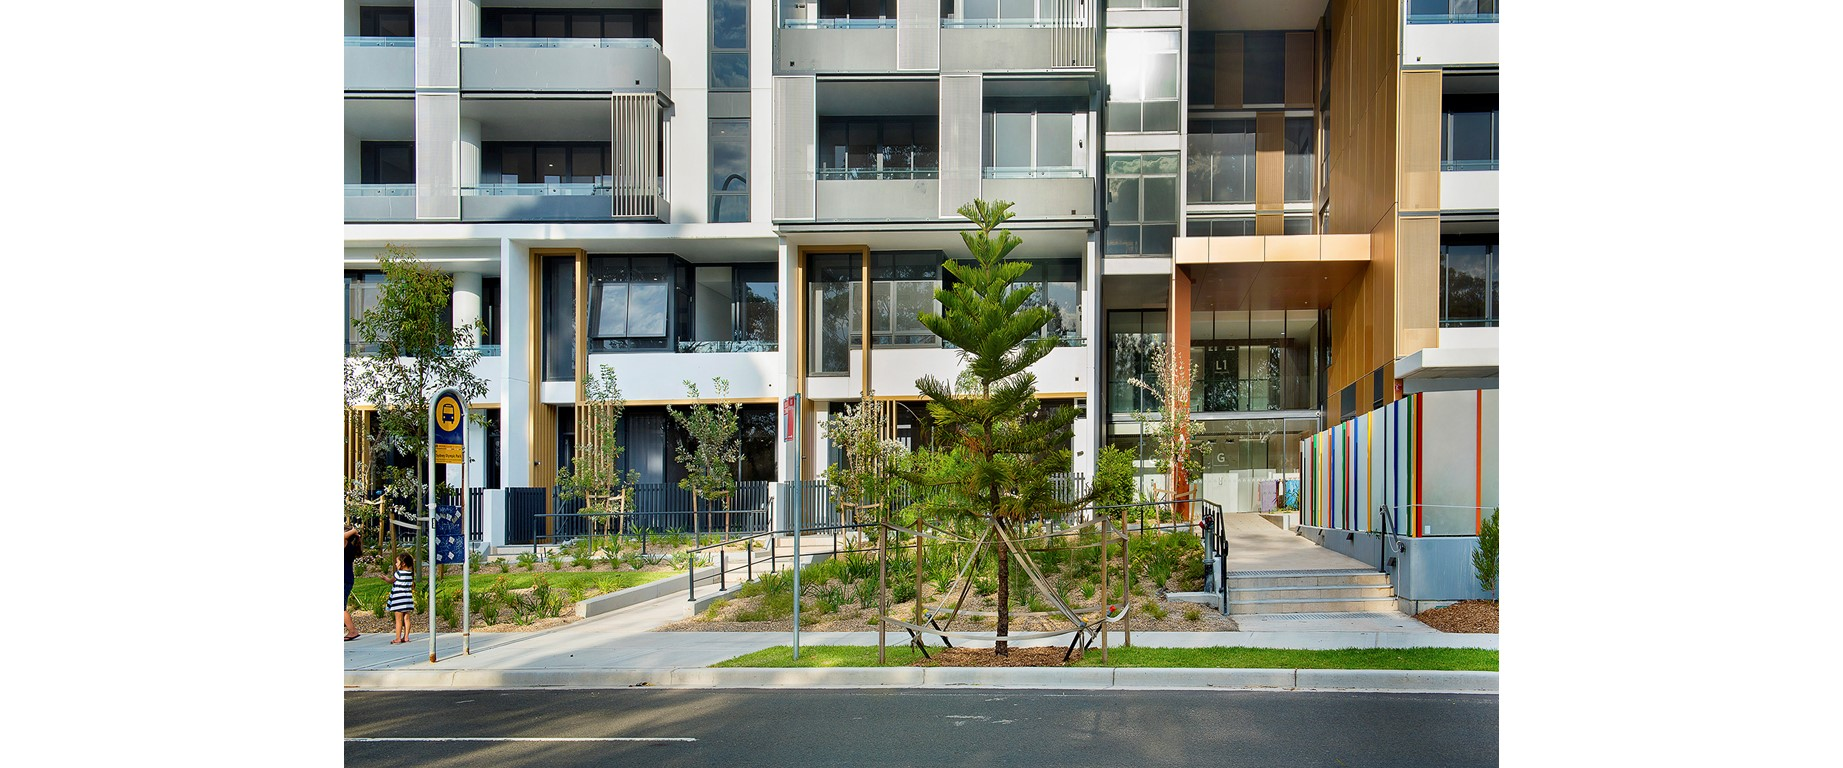 Apartments for Sale Pagewood NSW | Pagewood Green - Allium ...